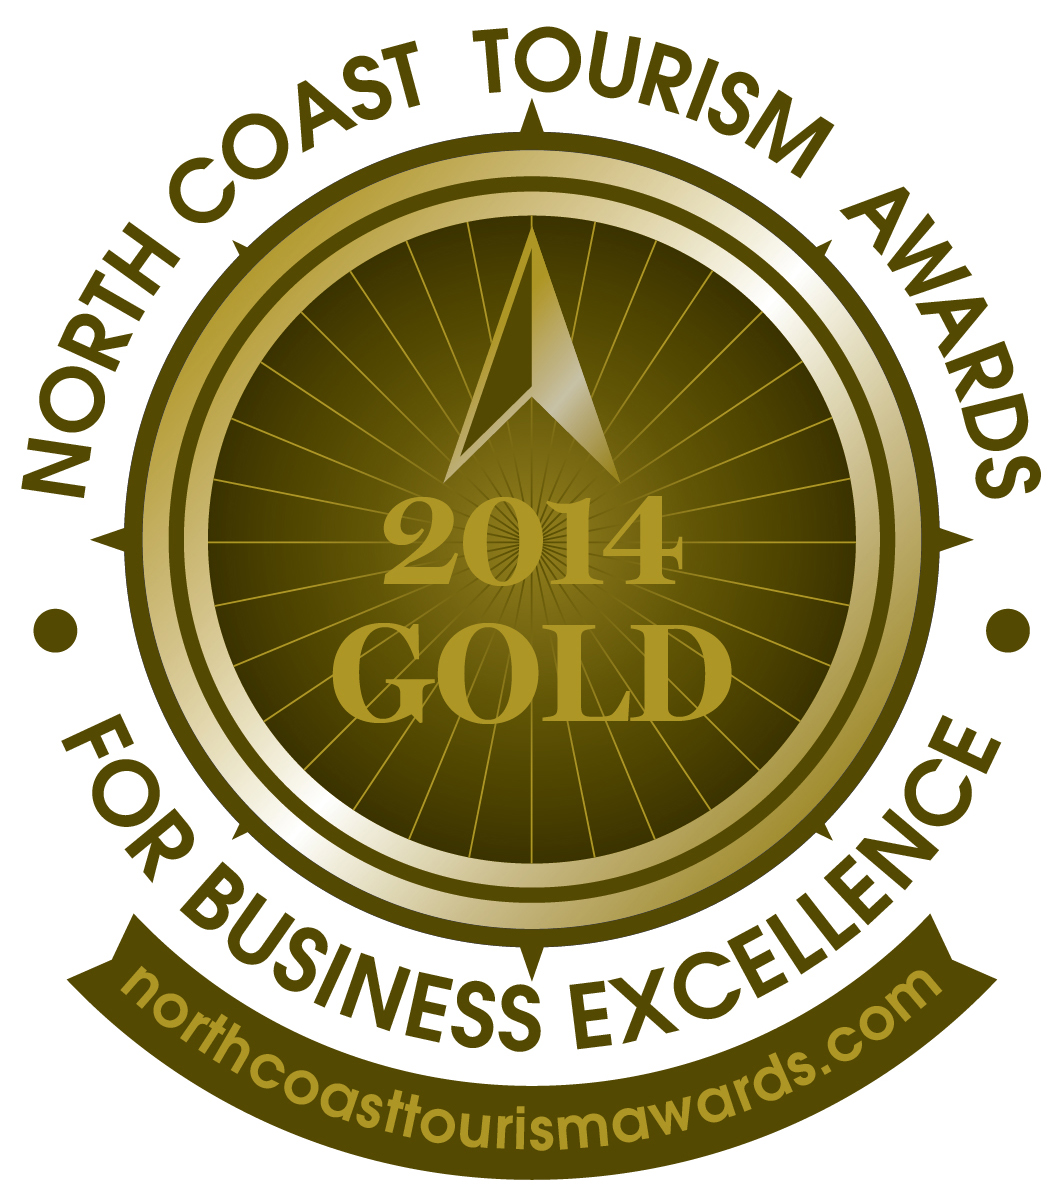 North Coast Tourism Awards 2014 gold winner